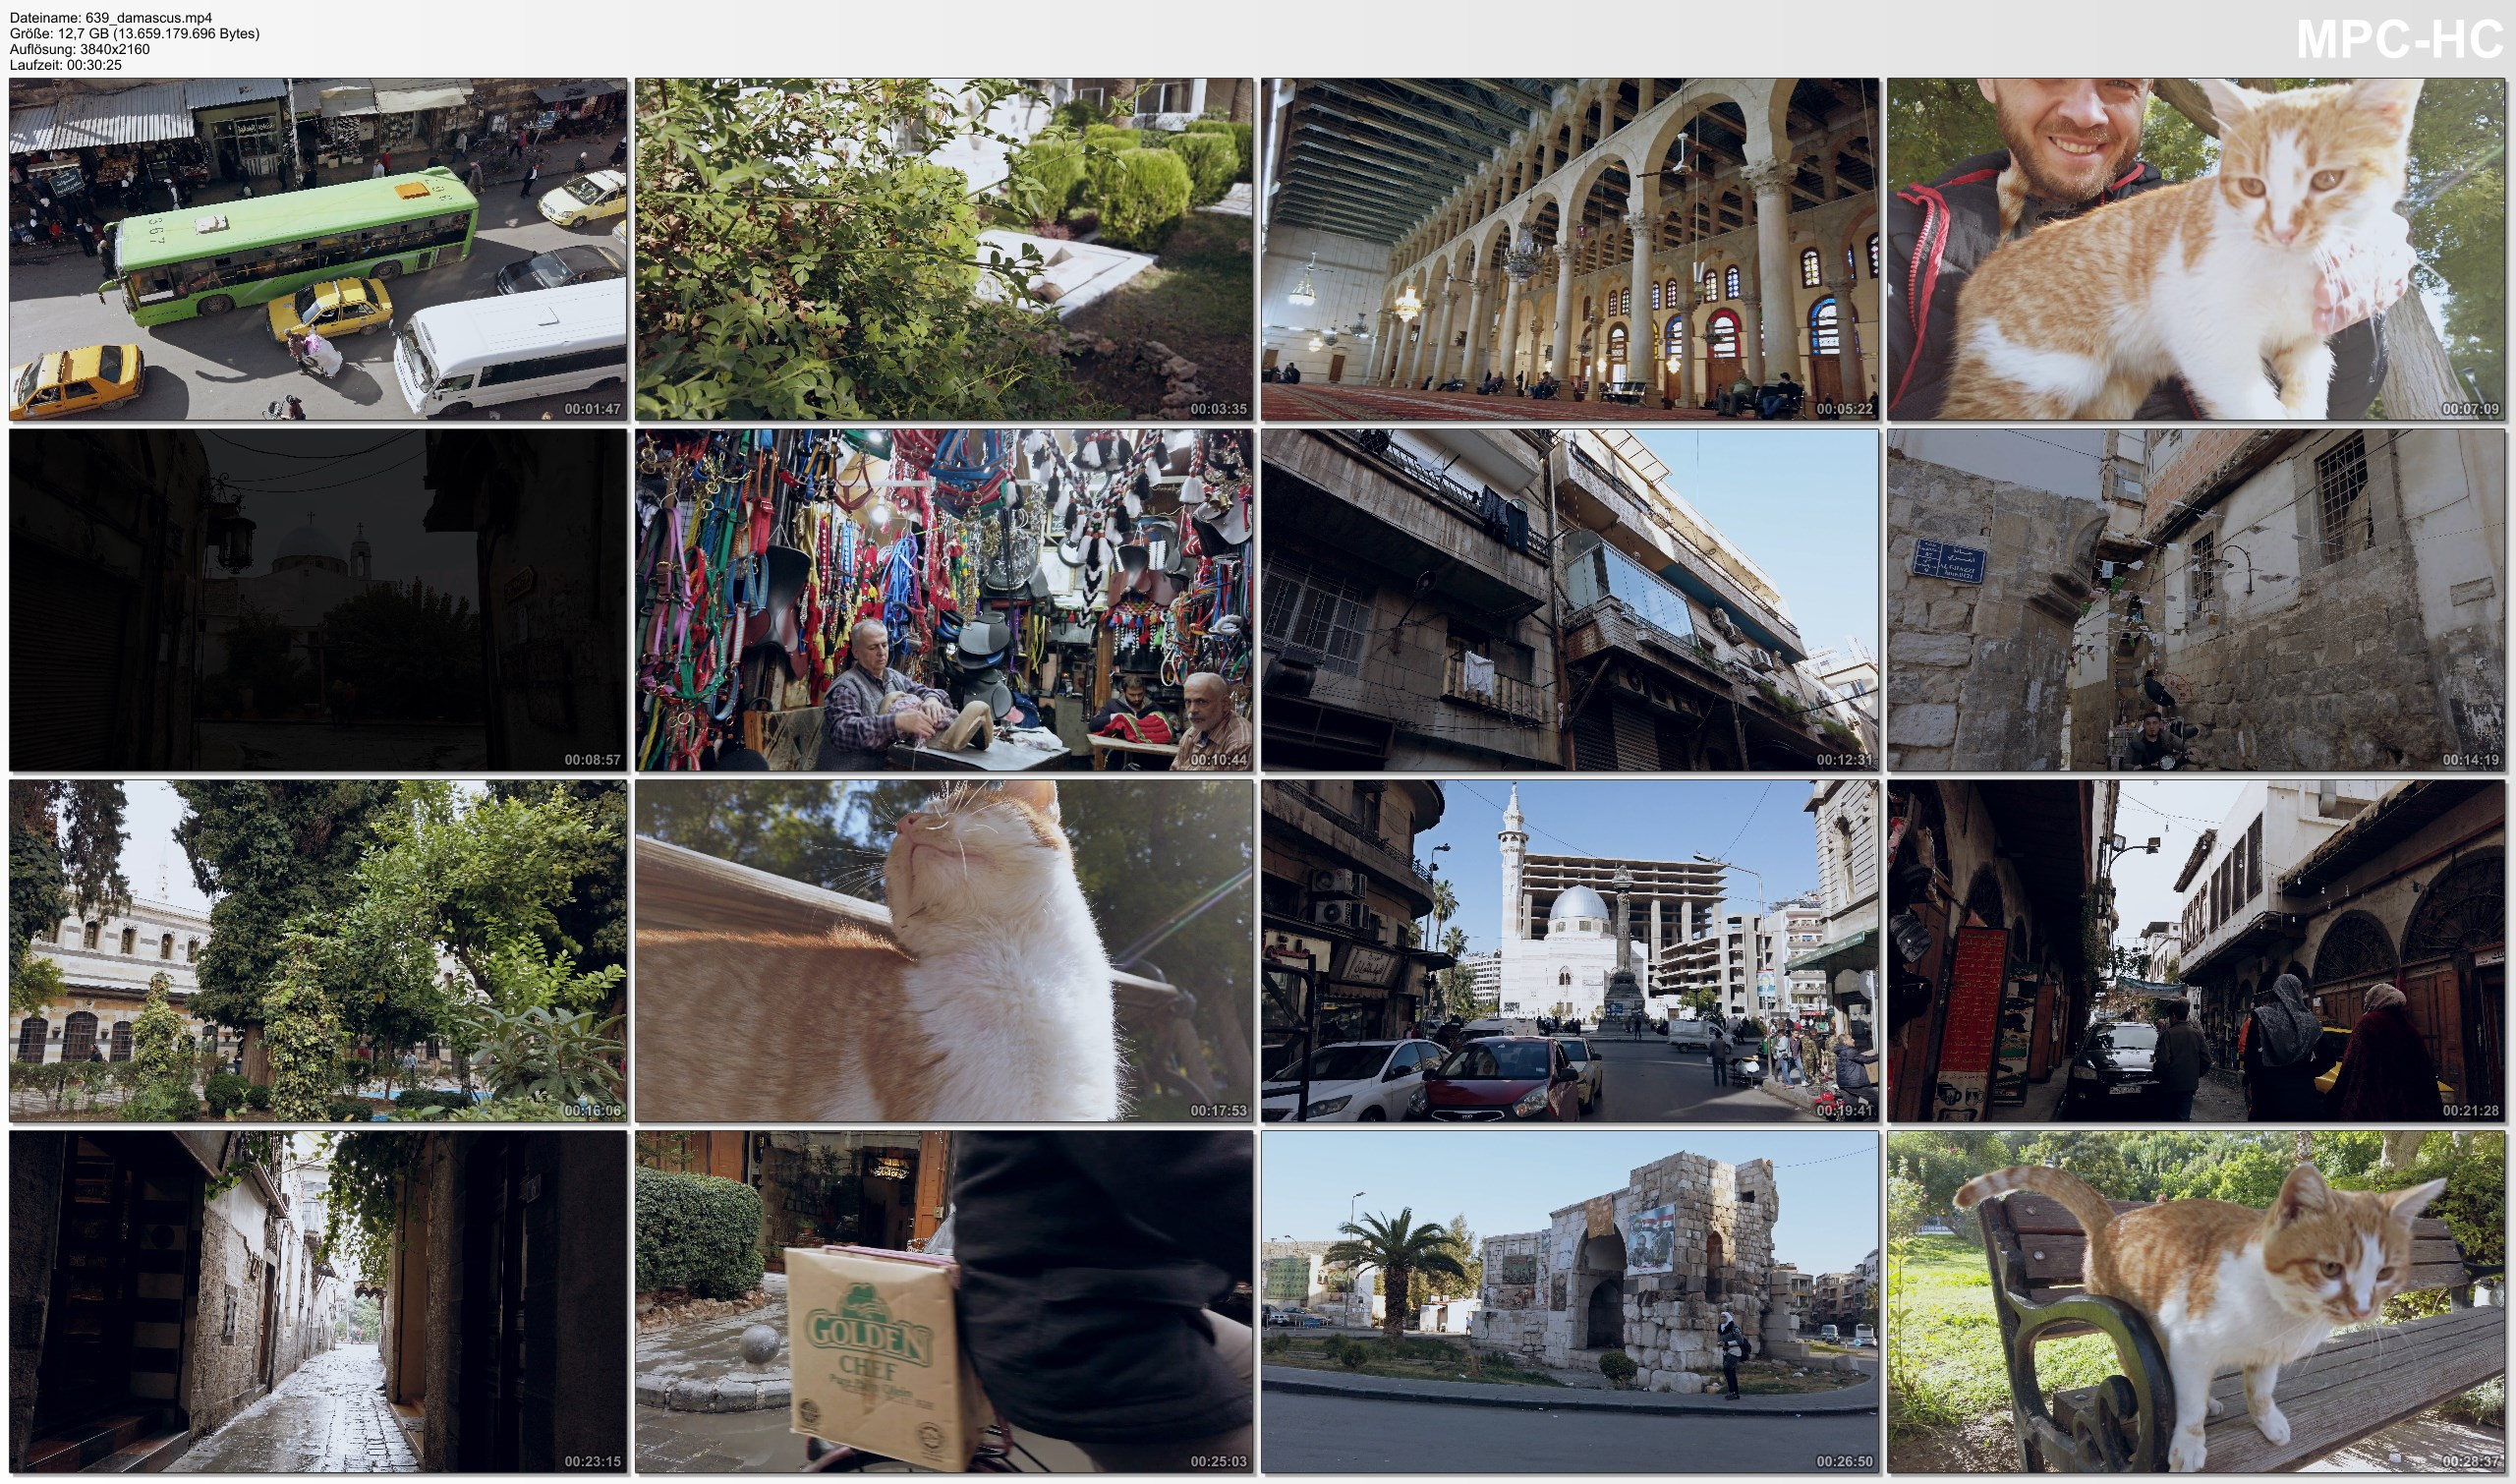 Pictures from Video 【4K】Virtual Walking Tour | Damascus - SYRIA 2020 | City Street Scenes UltraHD Travel Video دمشق